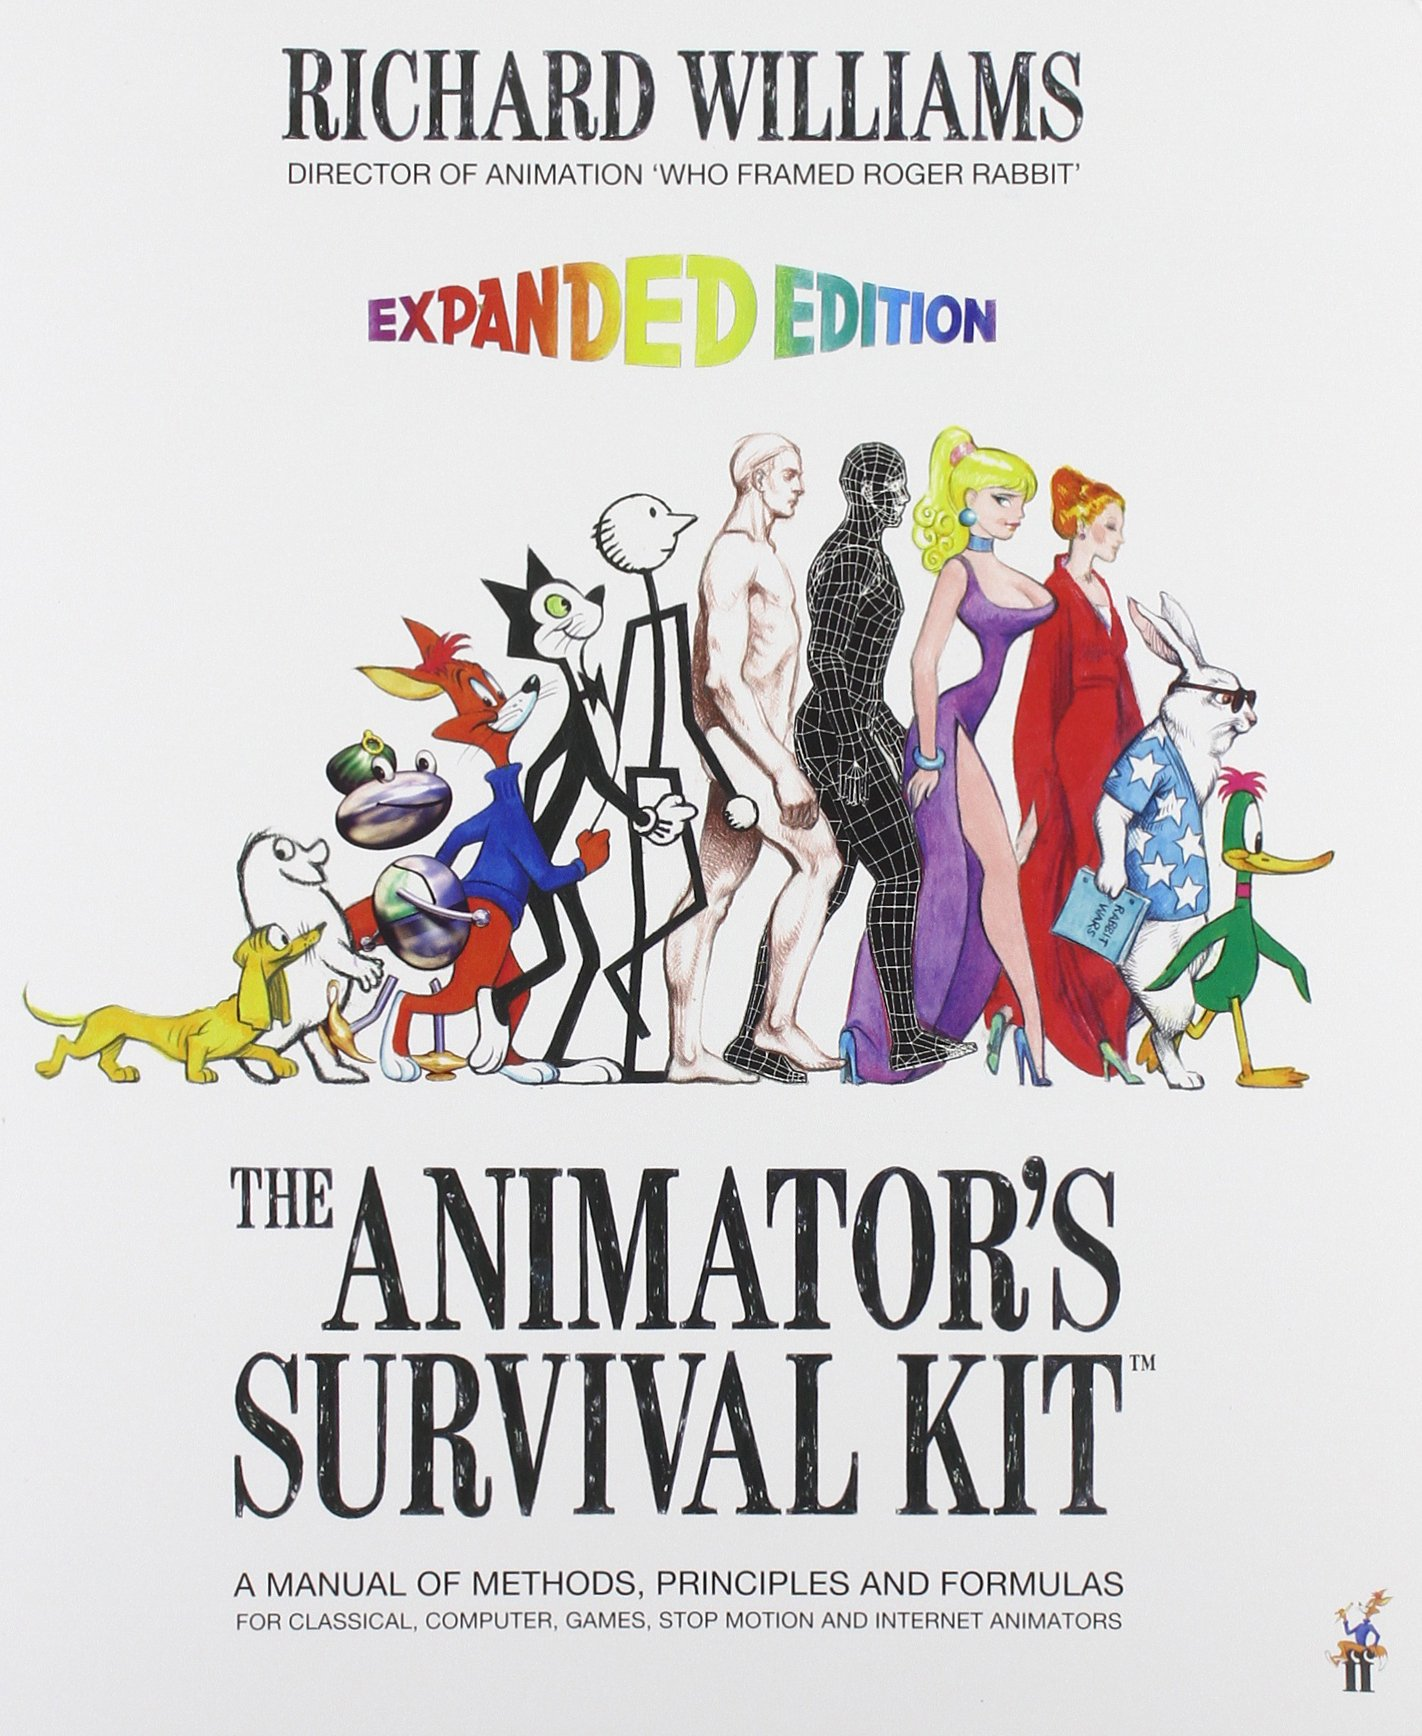 02_The Animator's Survival Kit